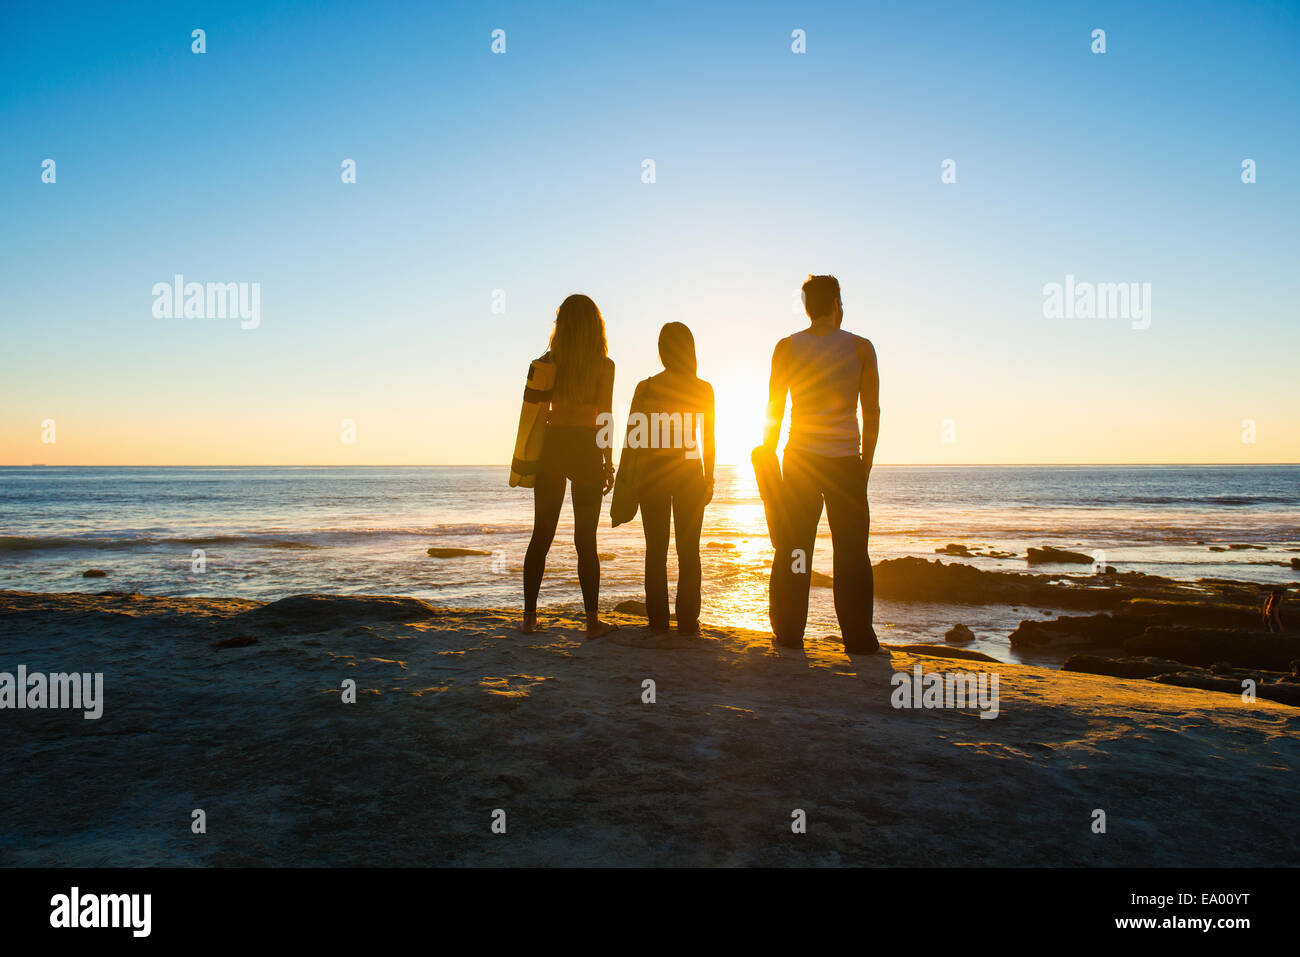 Three people at Windansea beach, La Jolla, California - Stock Image